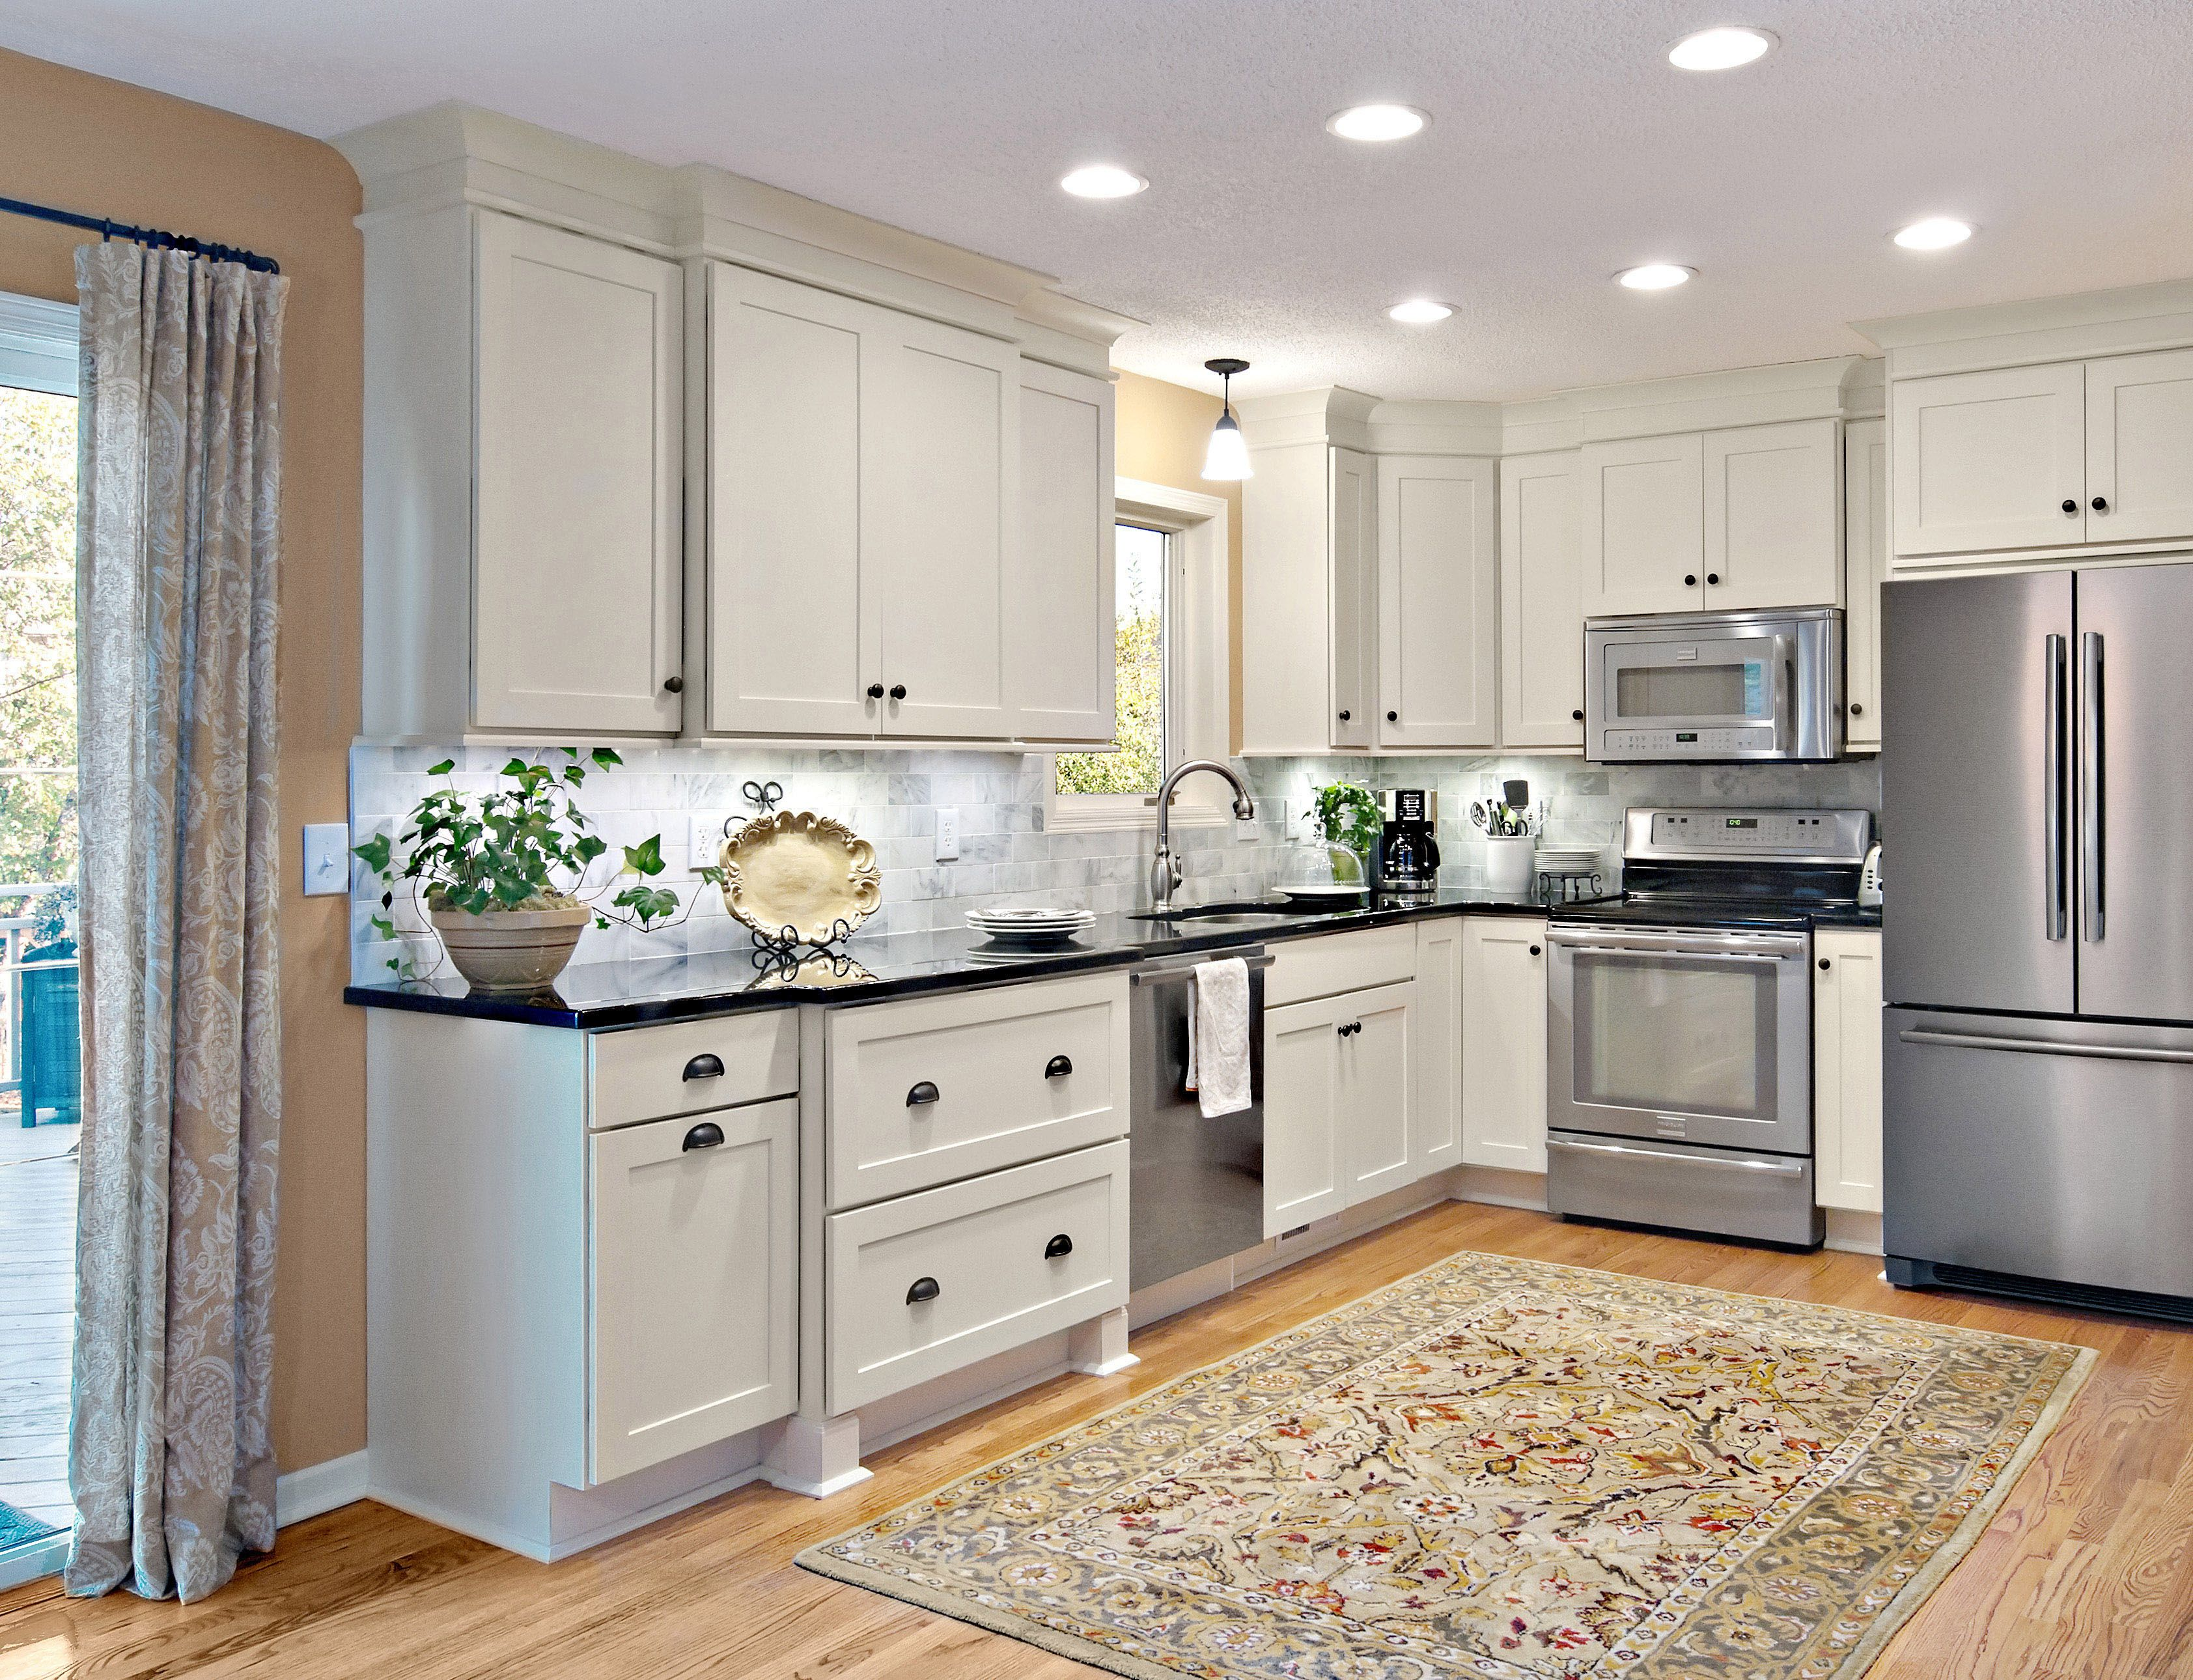 best way to paint kitchen cabinet doors best way to paint kitchen cabinets a step by step guide 12249